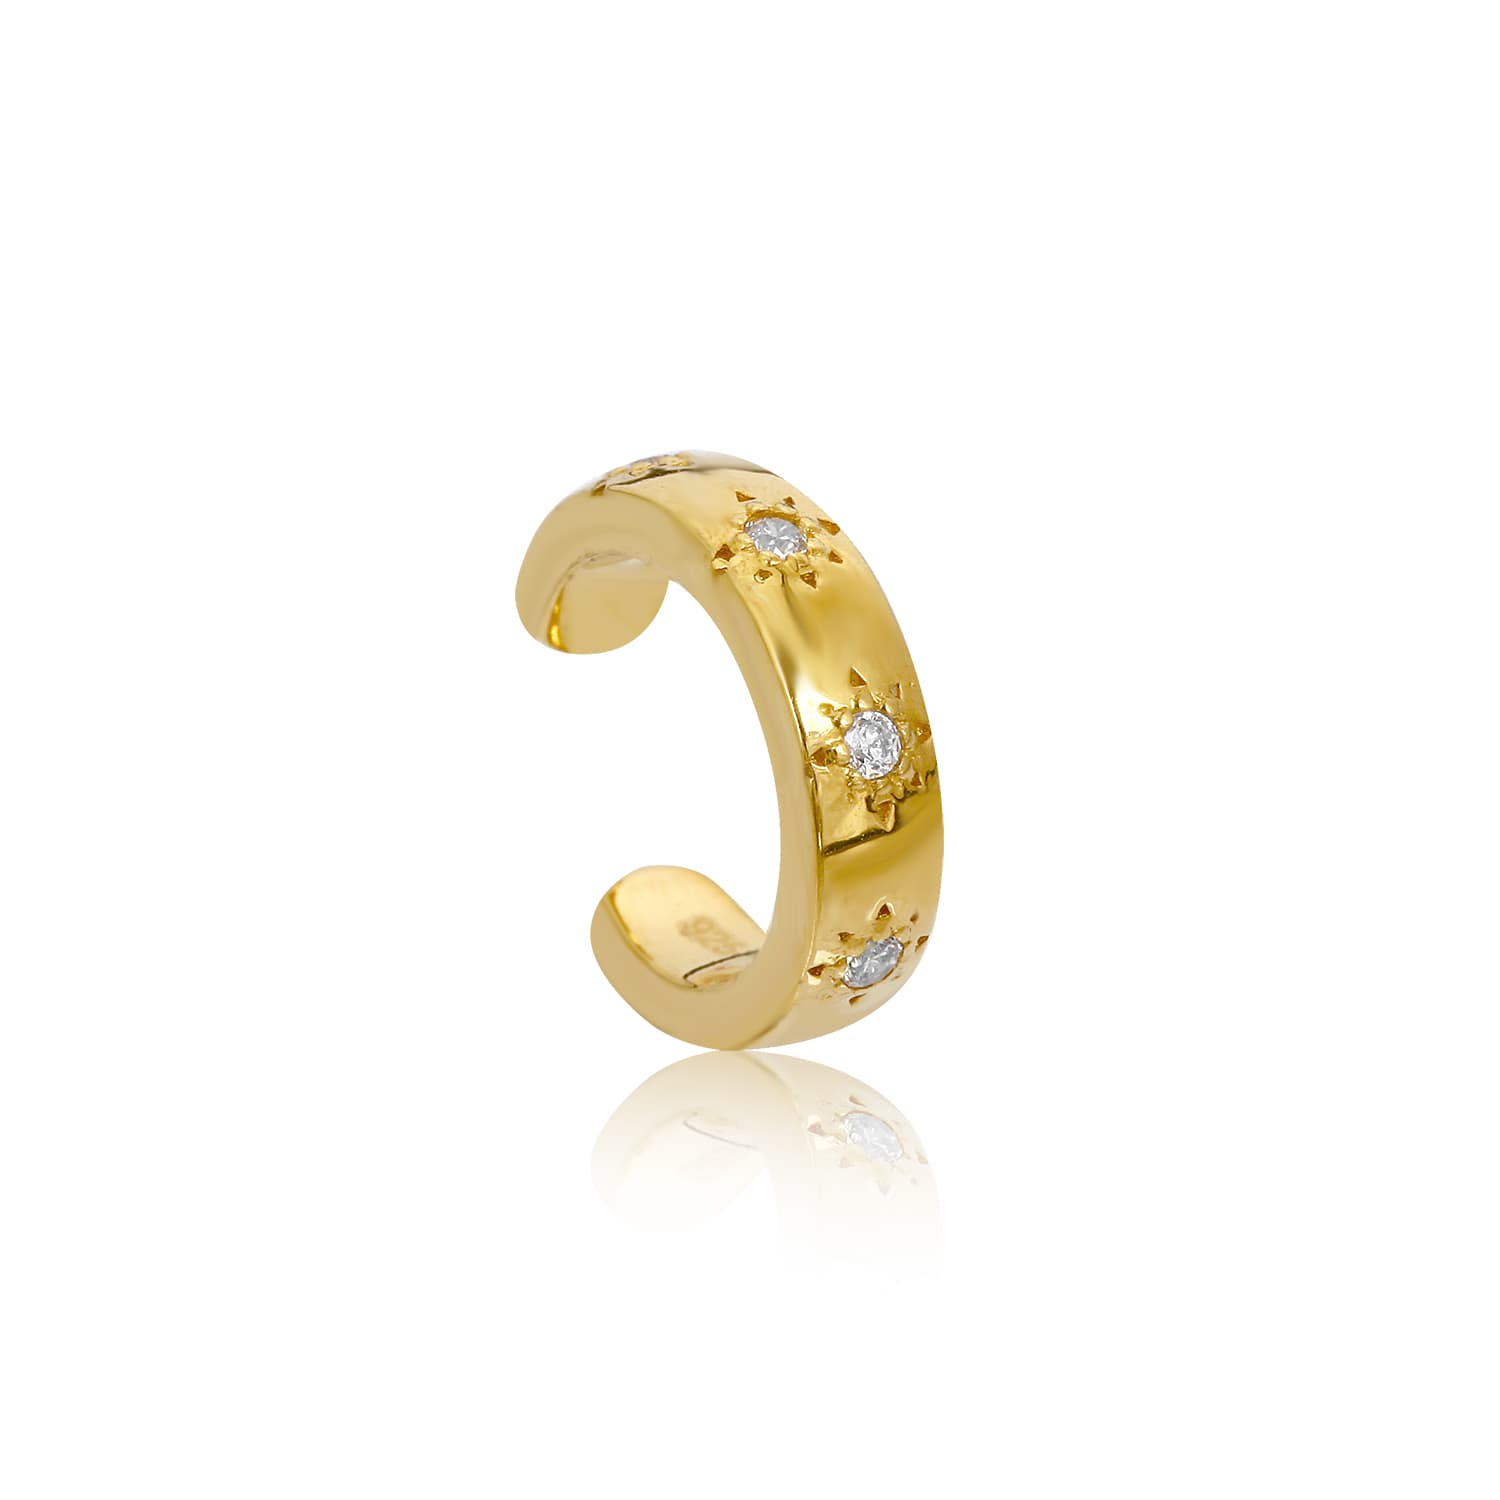 24 carat gold plated silver earcuff models